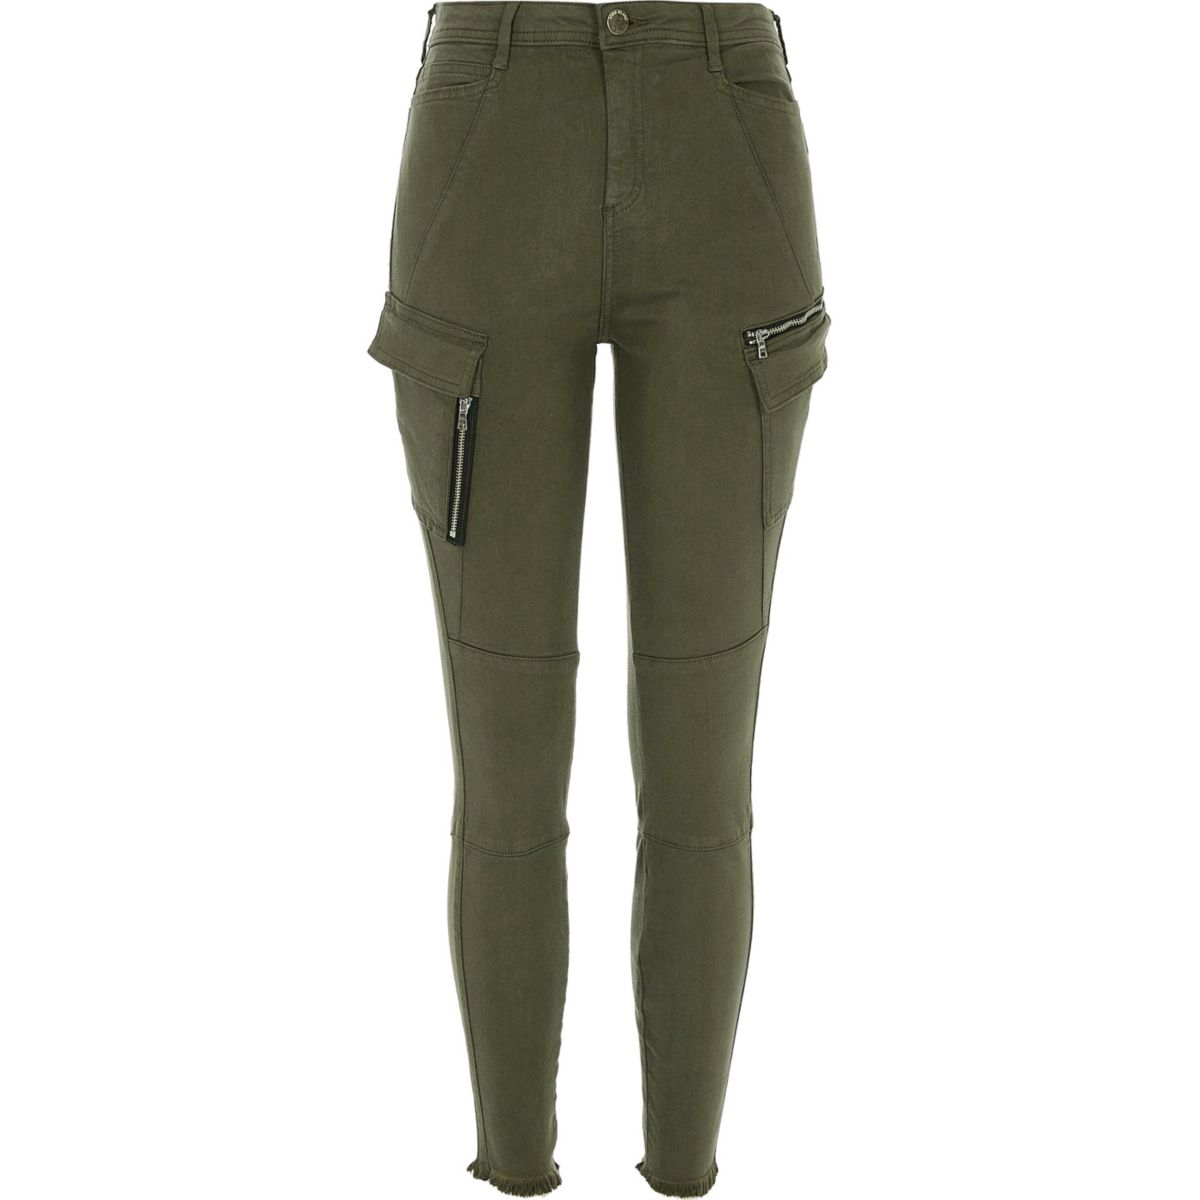 Mens Trousers and Chinos Choose from our great selection of low price men's trousers and chinos, including joggers, cargo trousers, tracksuit bottoms and much more. We've got styles from all the biggest brands, including French Connection and Jack and Jones.